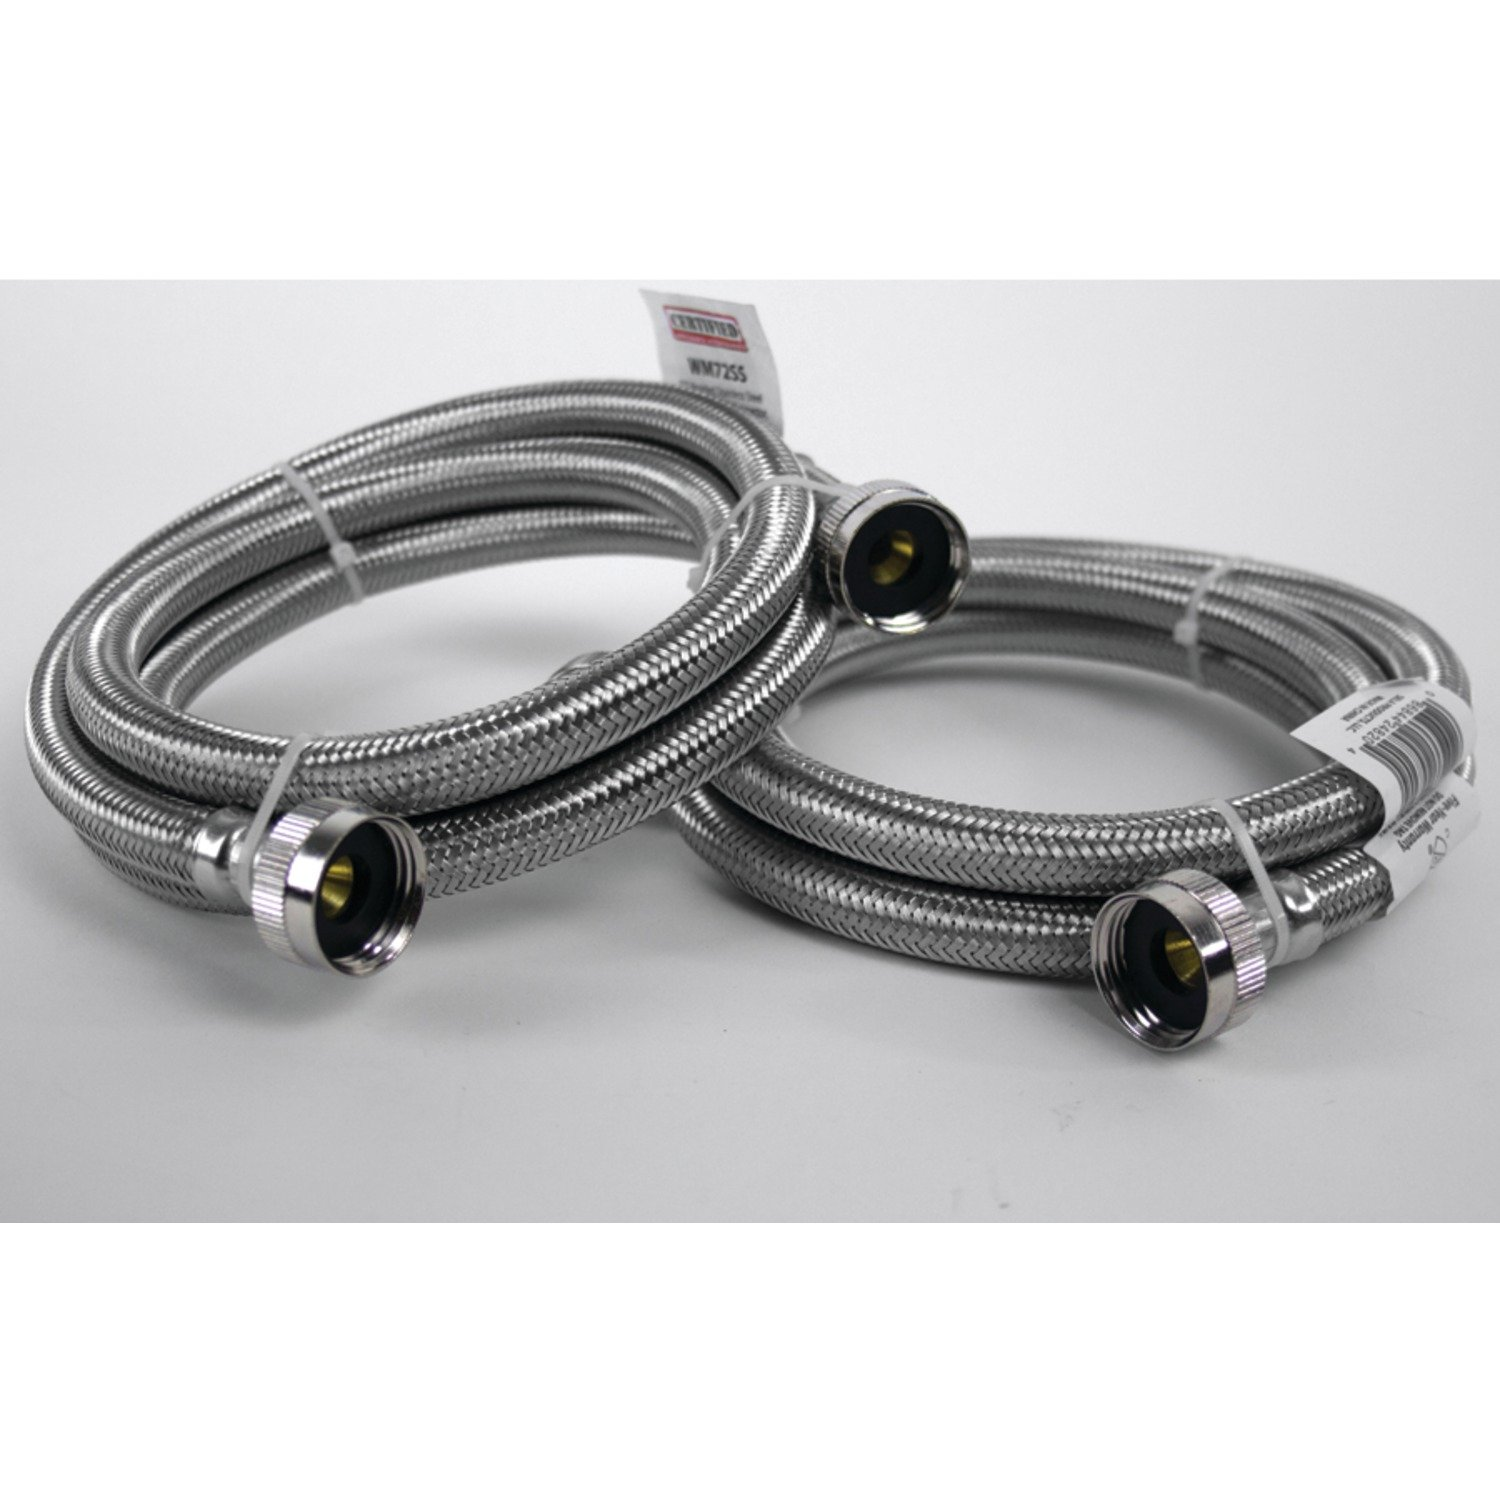 Certified Appliance Accessories Braided Stainless Steel Washing Machine Hoses, 6ft by Certified Appliance Accessories (Image #6)